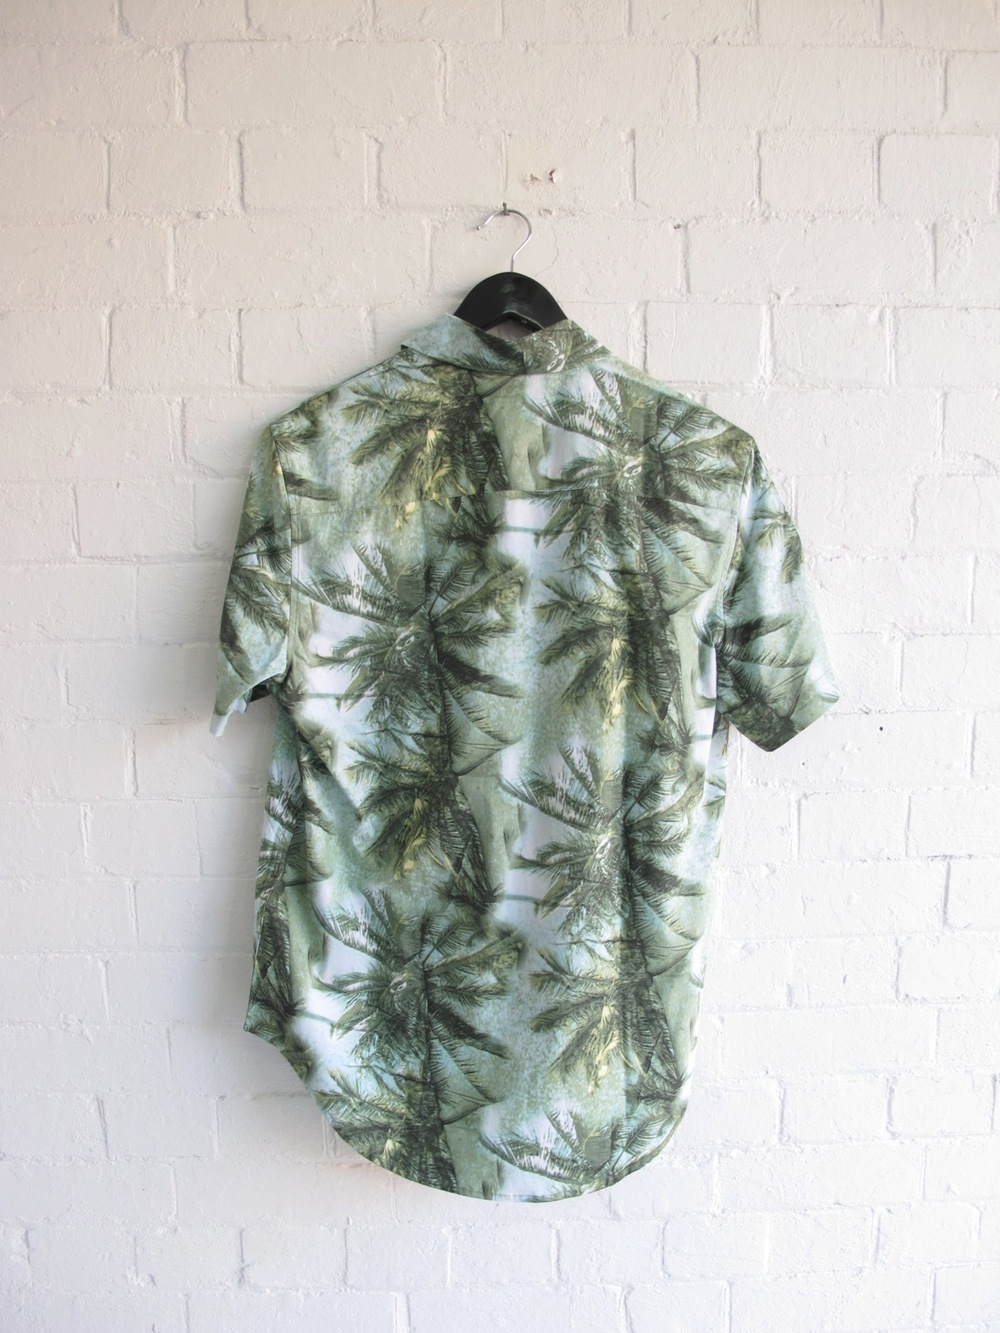 palm tree shirt - Second Floor Flat